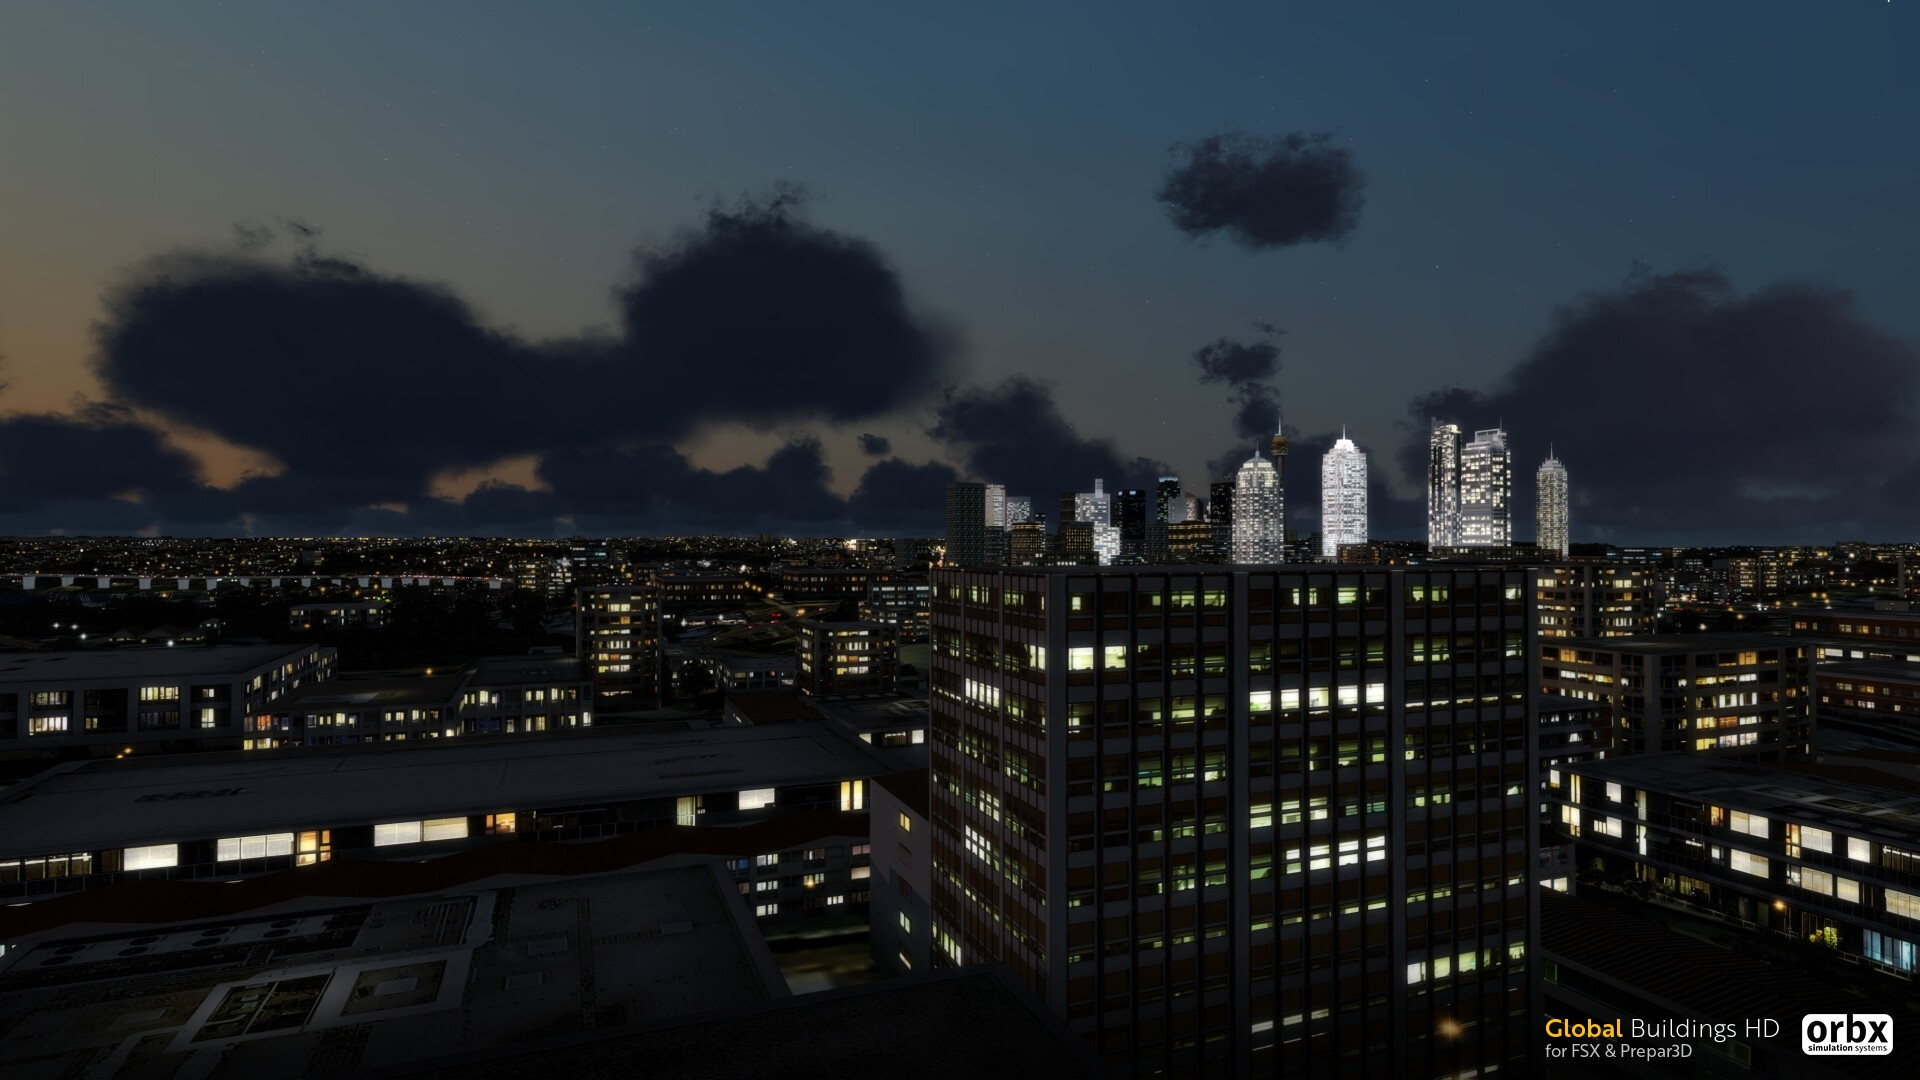 orbx] Global Buildings HD My first shots  - ON APPROACH - Topics